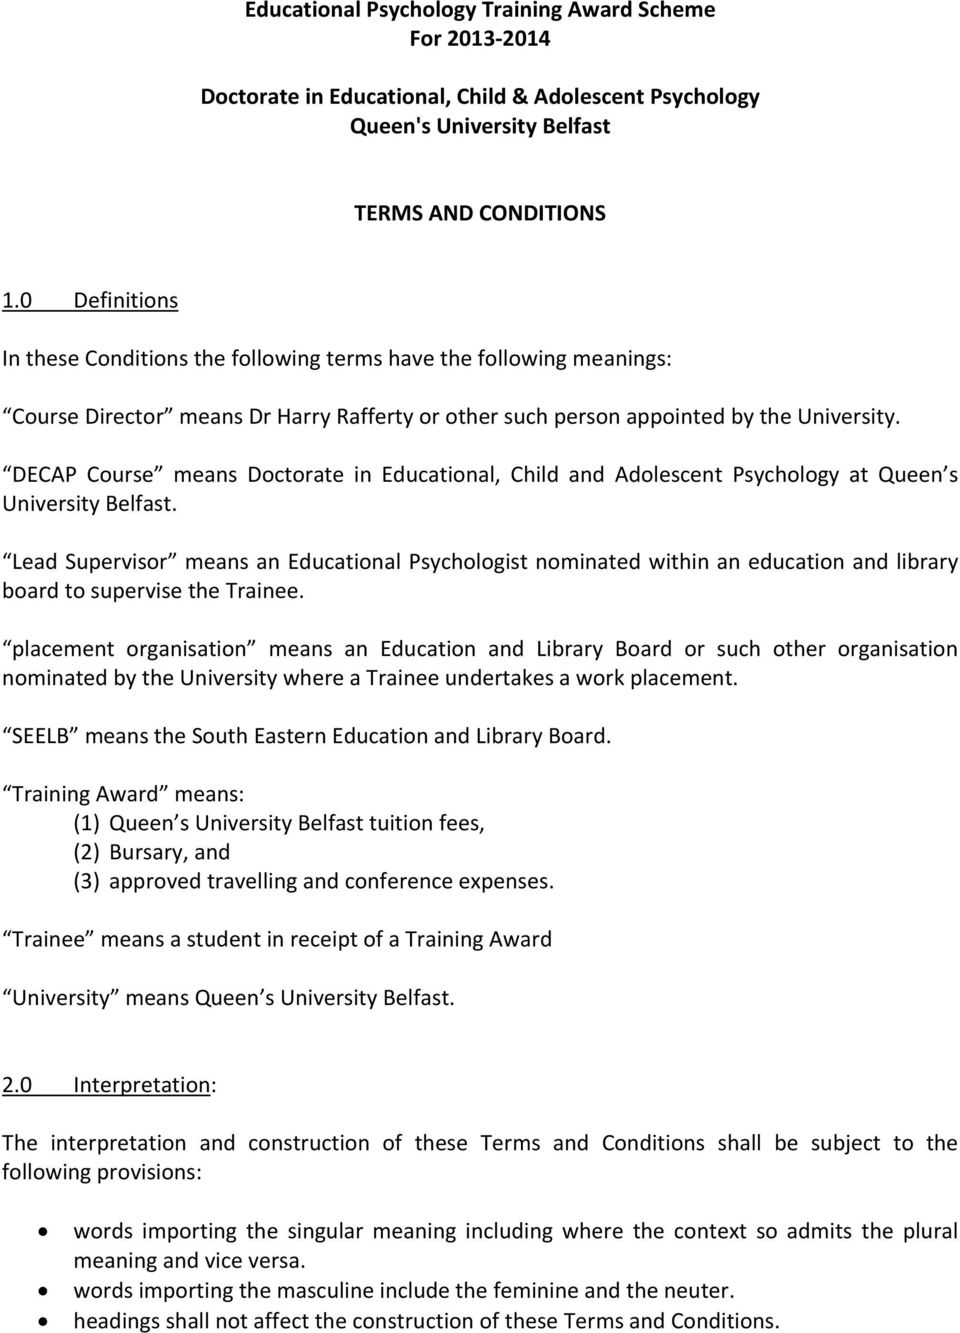 Educational Psychology Training Award Scheme For Doctorate in ...